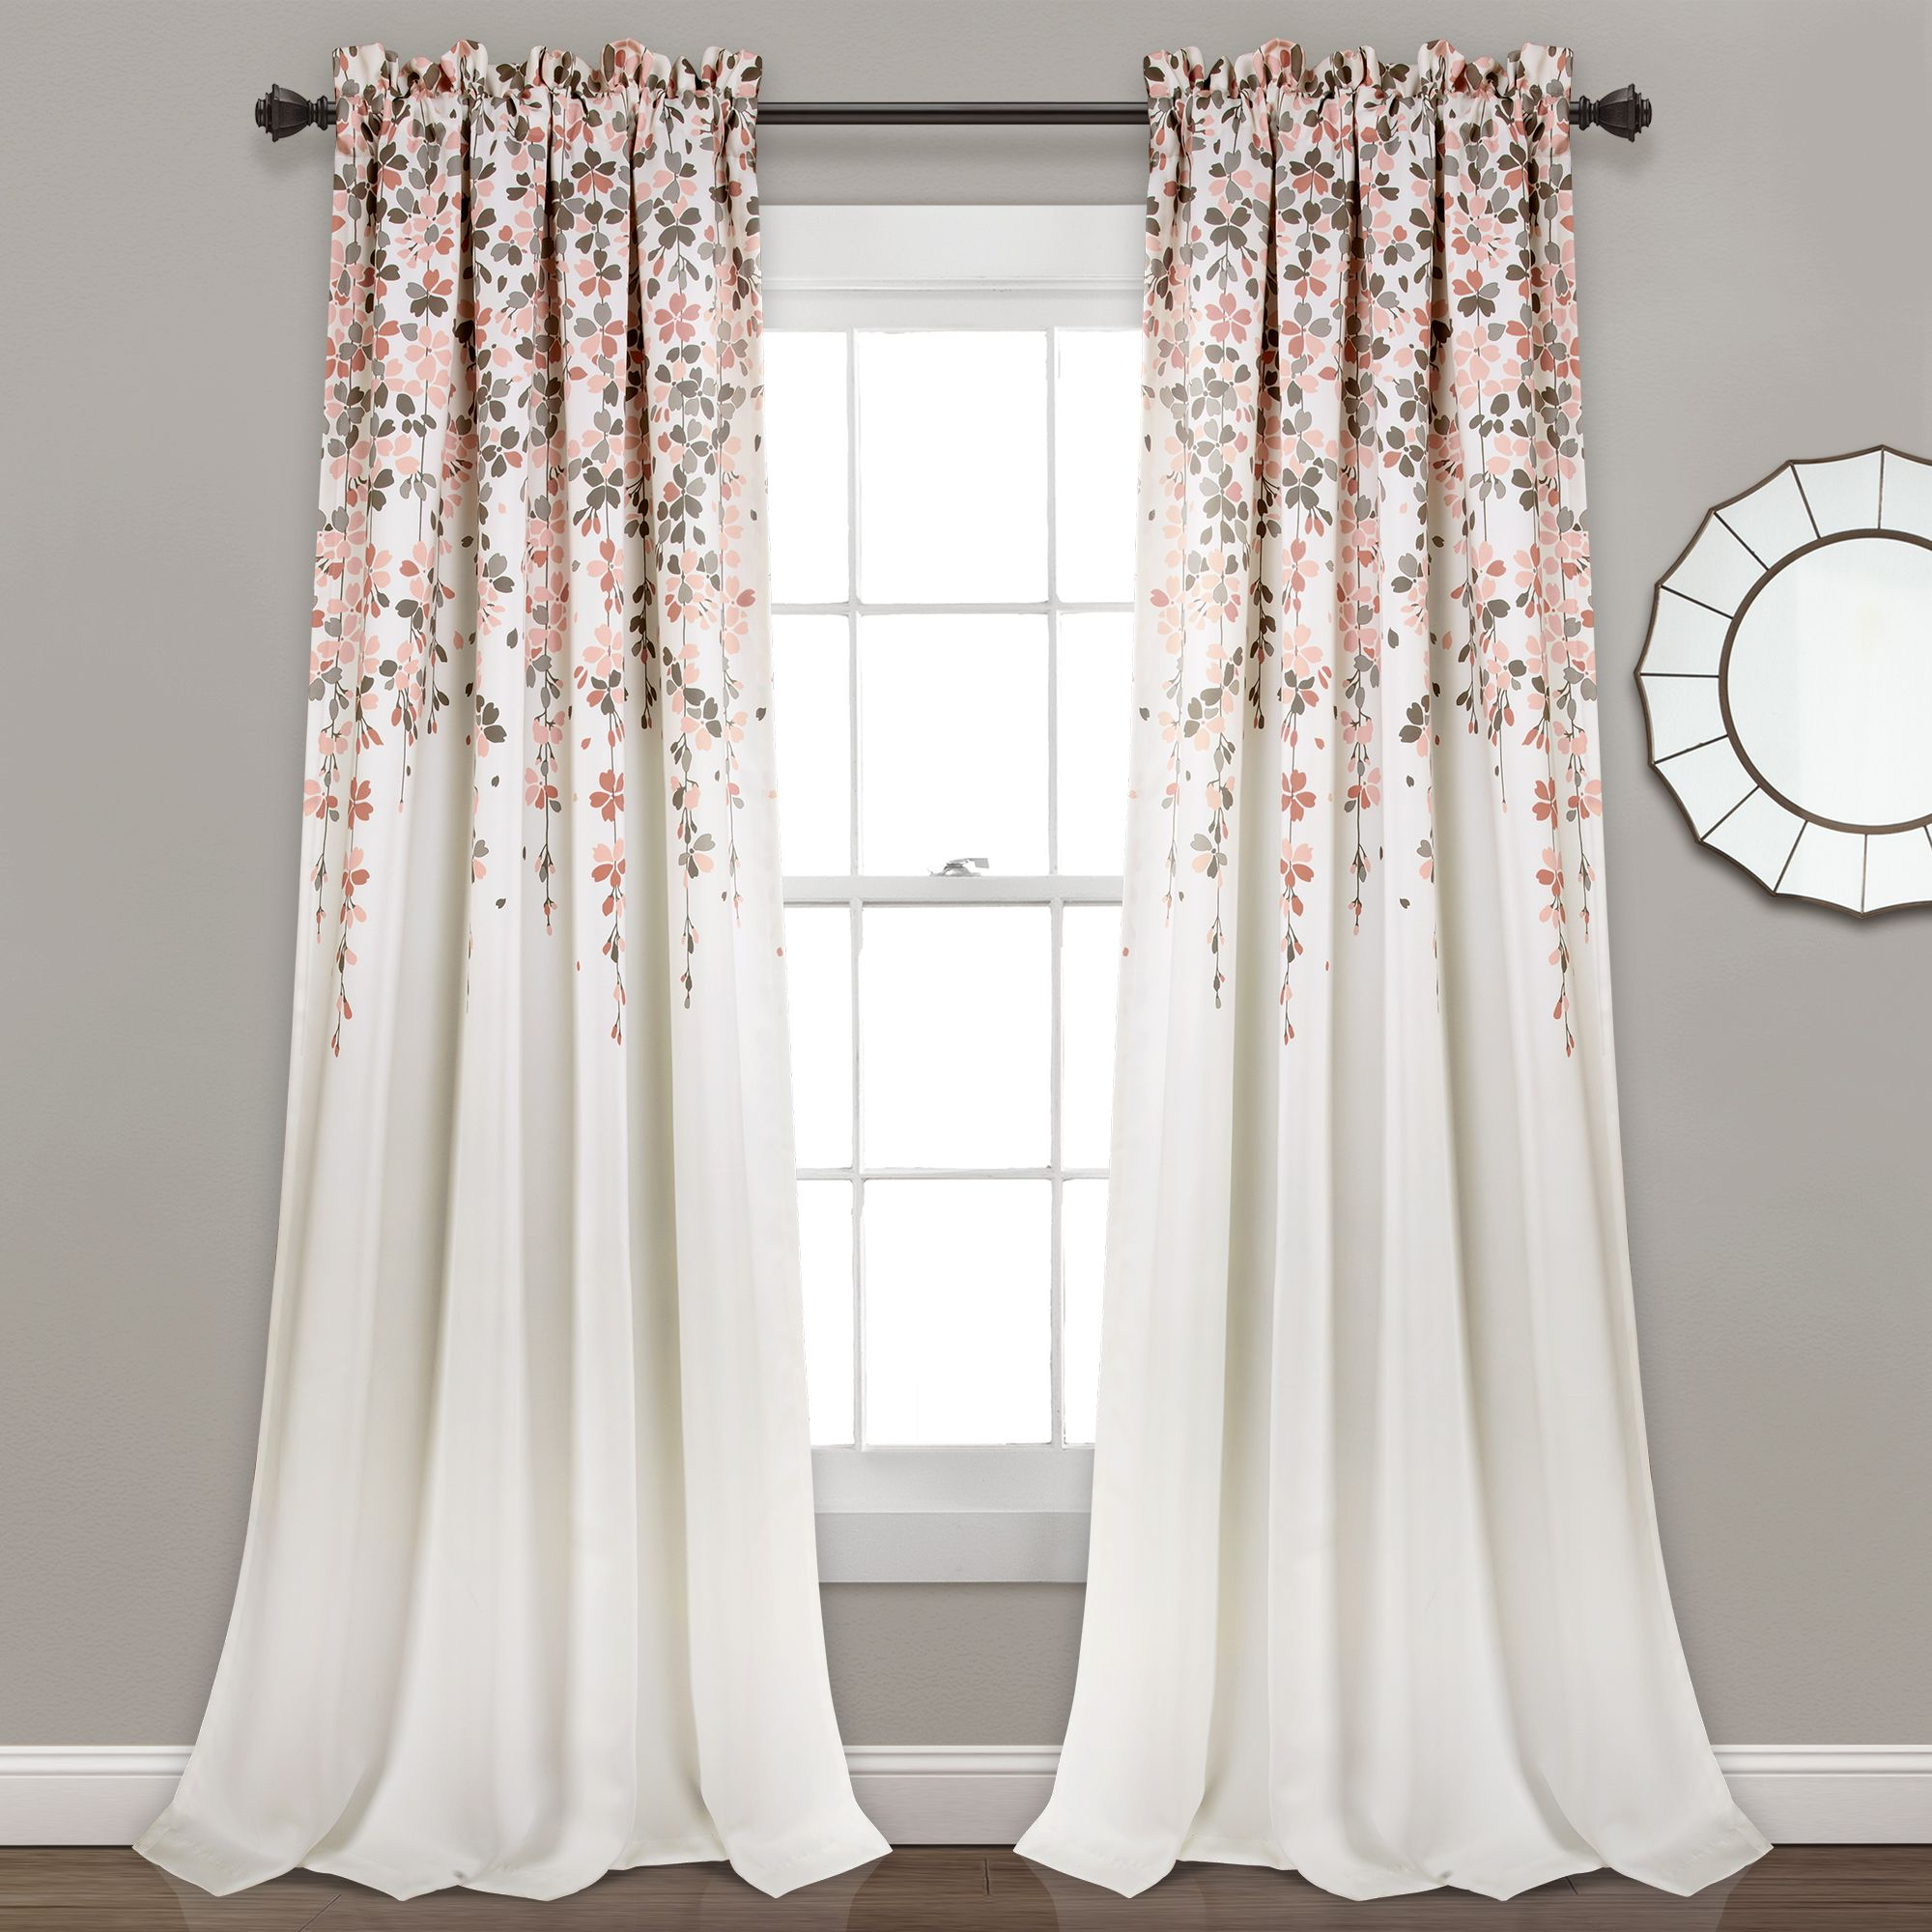 Home In 2020 With Images Lush Decor Pink Curtains Flower Room